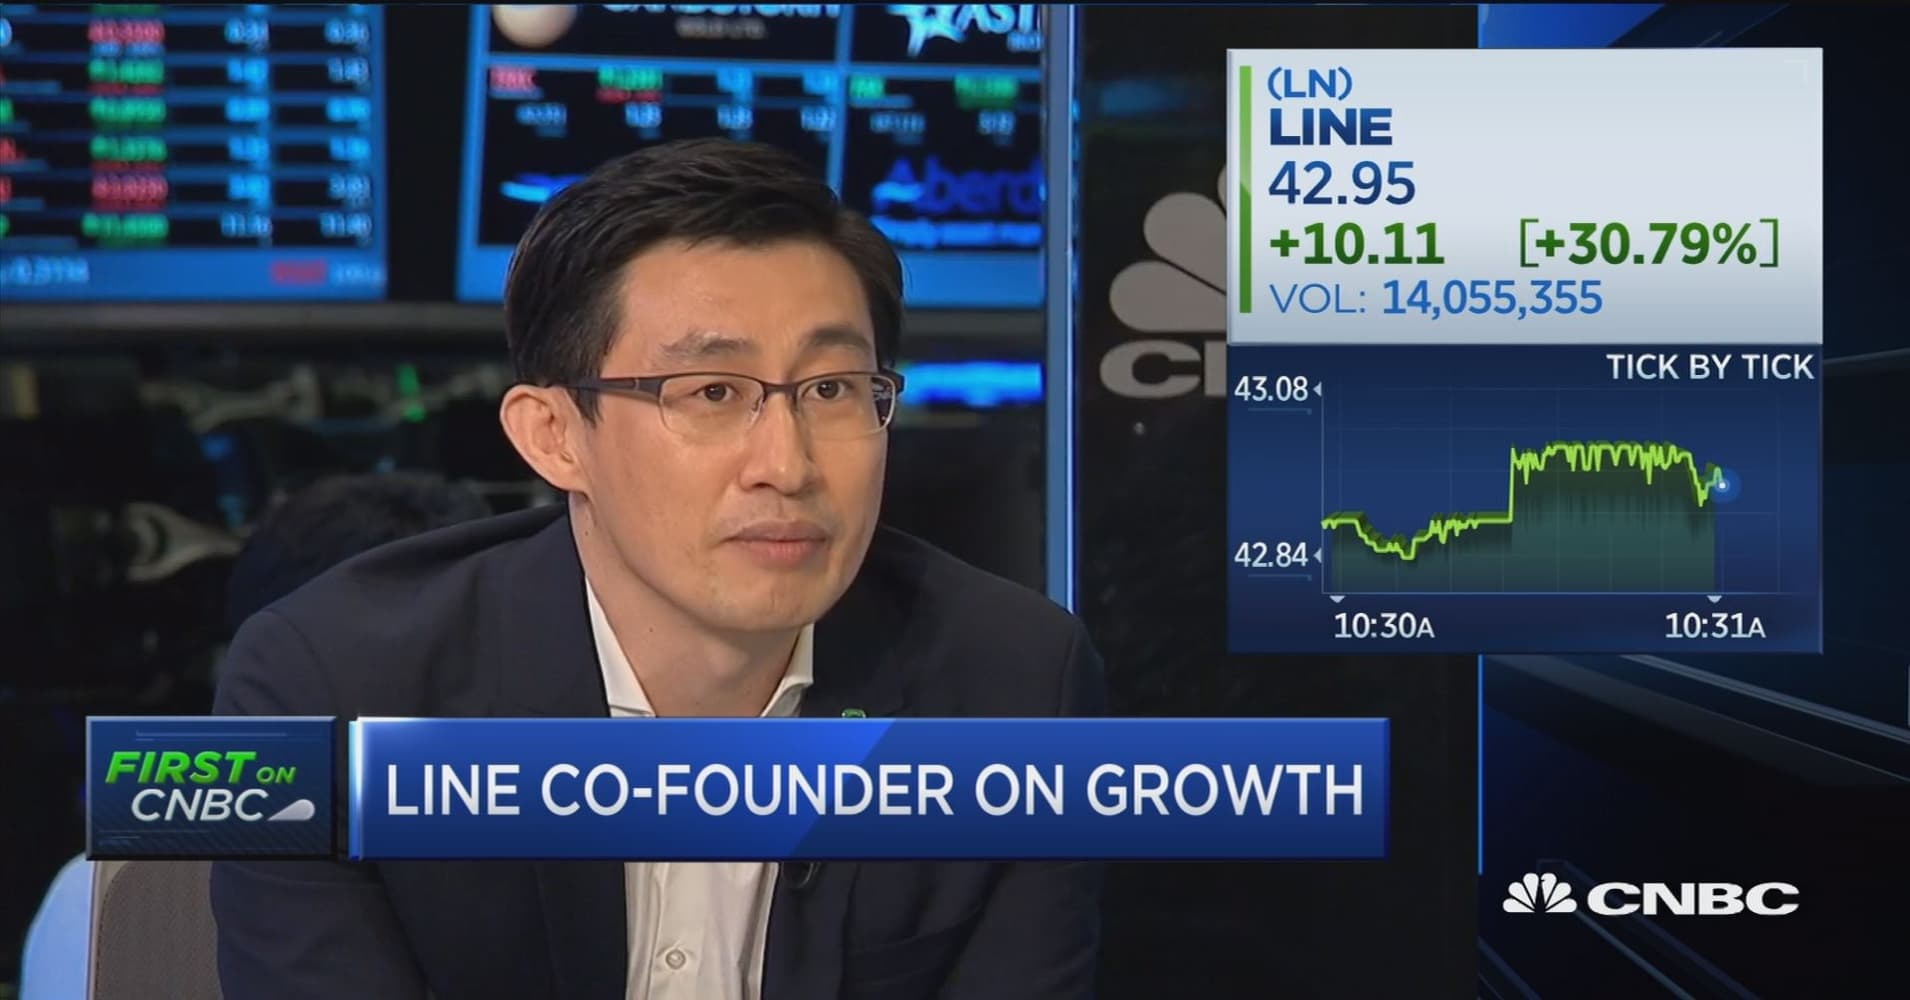 Line spikes 30% in market debut after opening at $42 in largest tech IPO